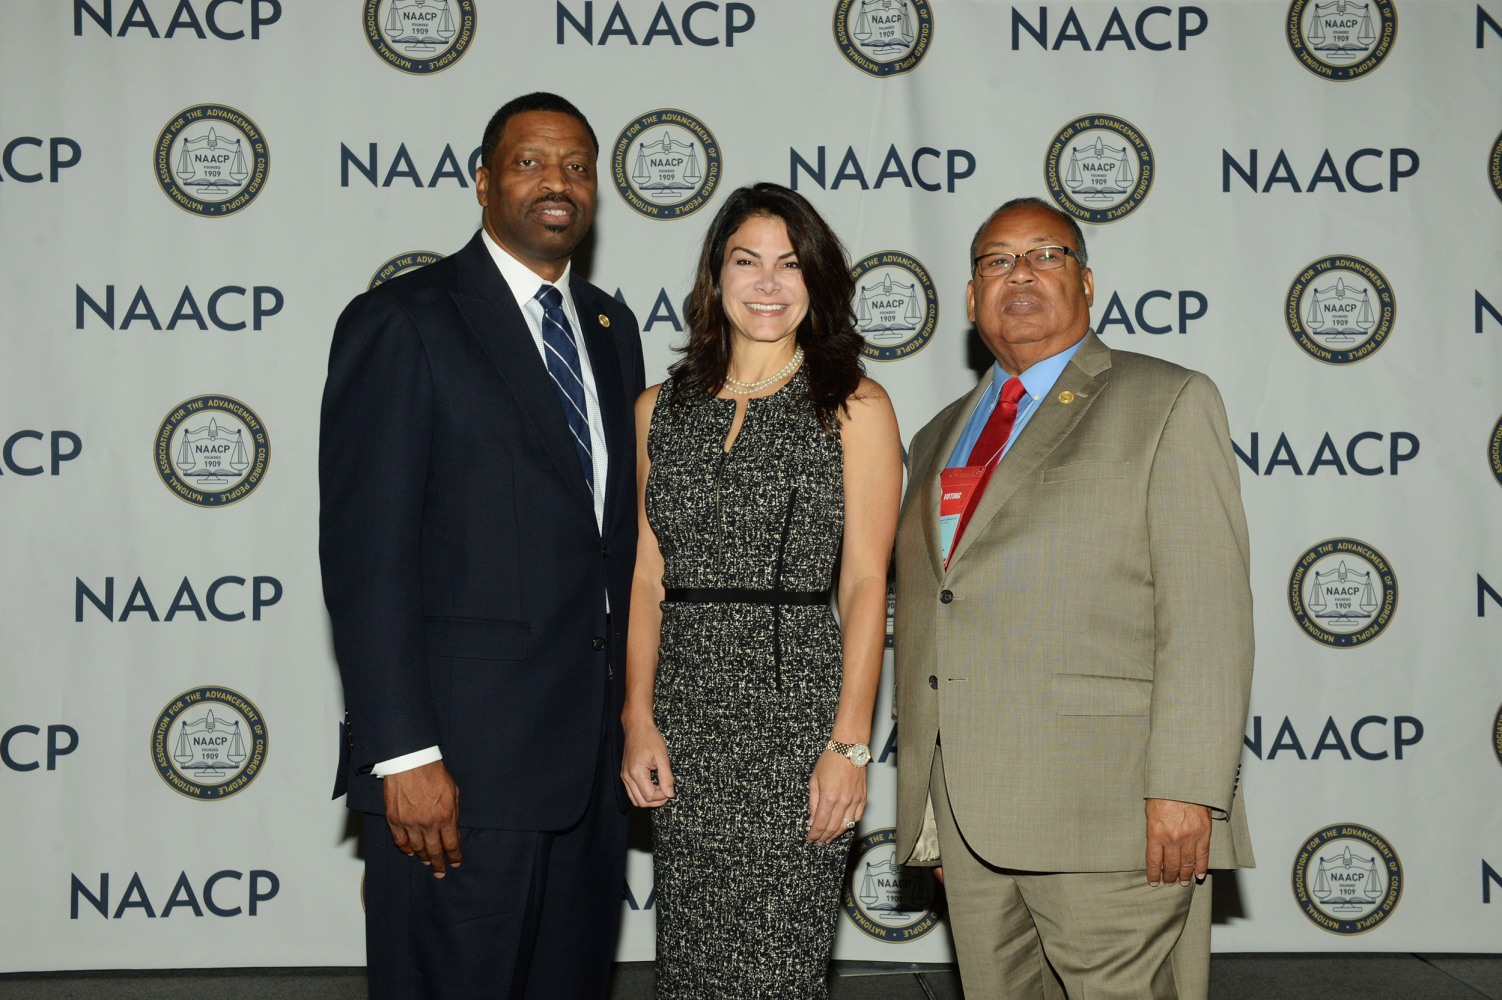 Derrick Johnson named interim NAACP president